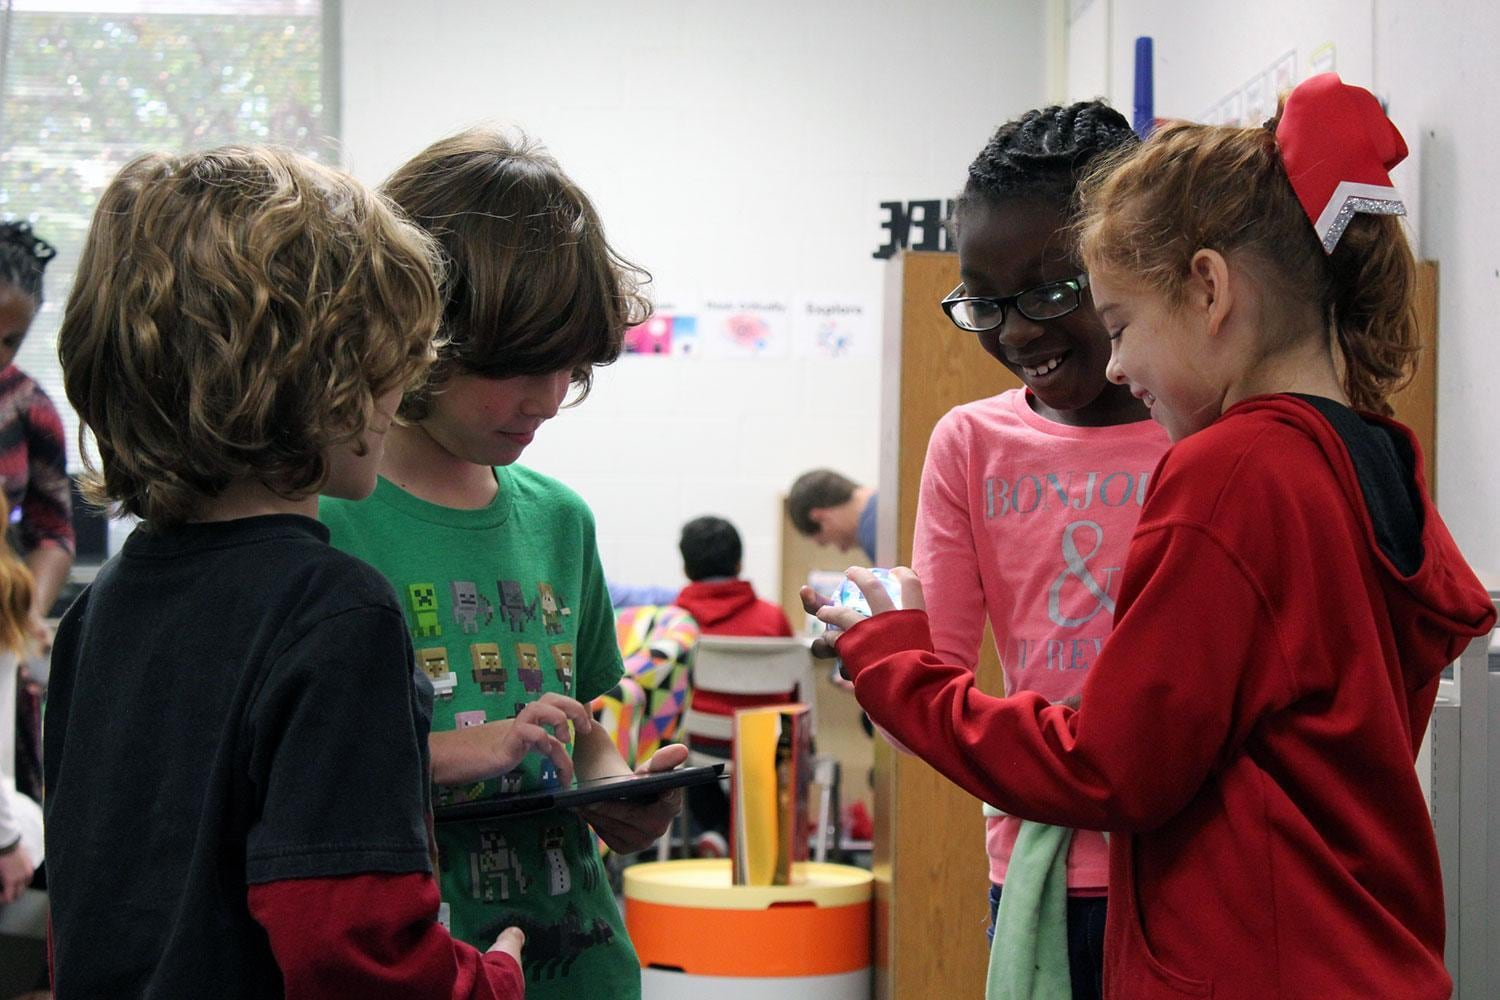 Group of young students using CodeSnaps app and holding robotic sphere